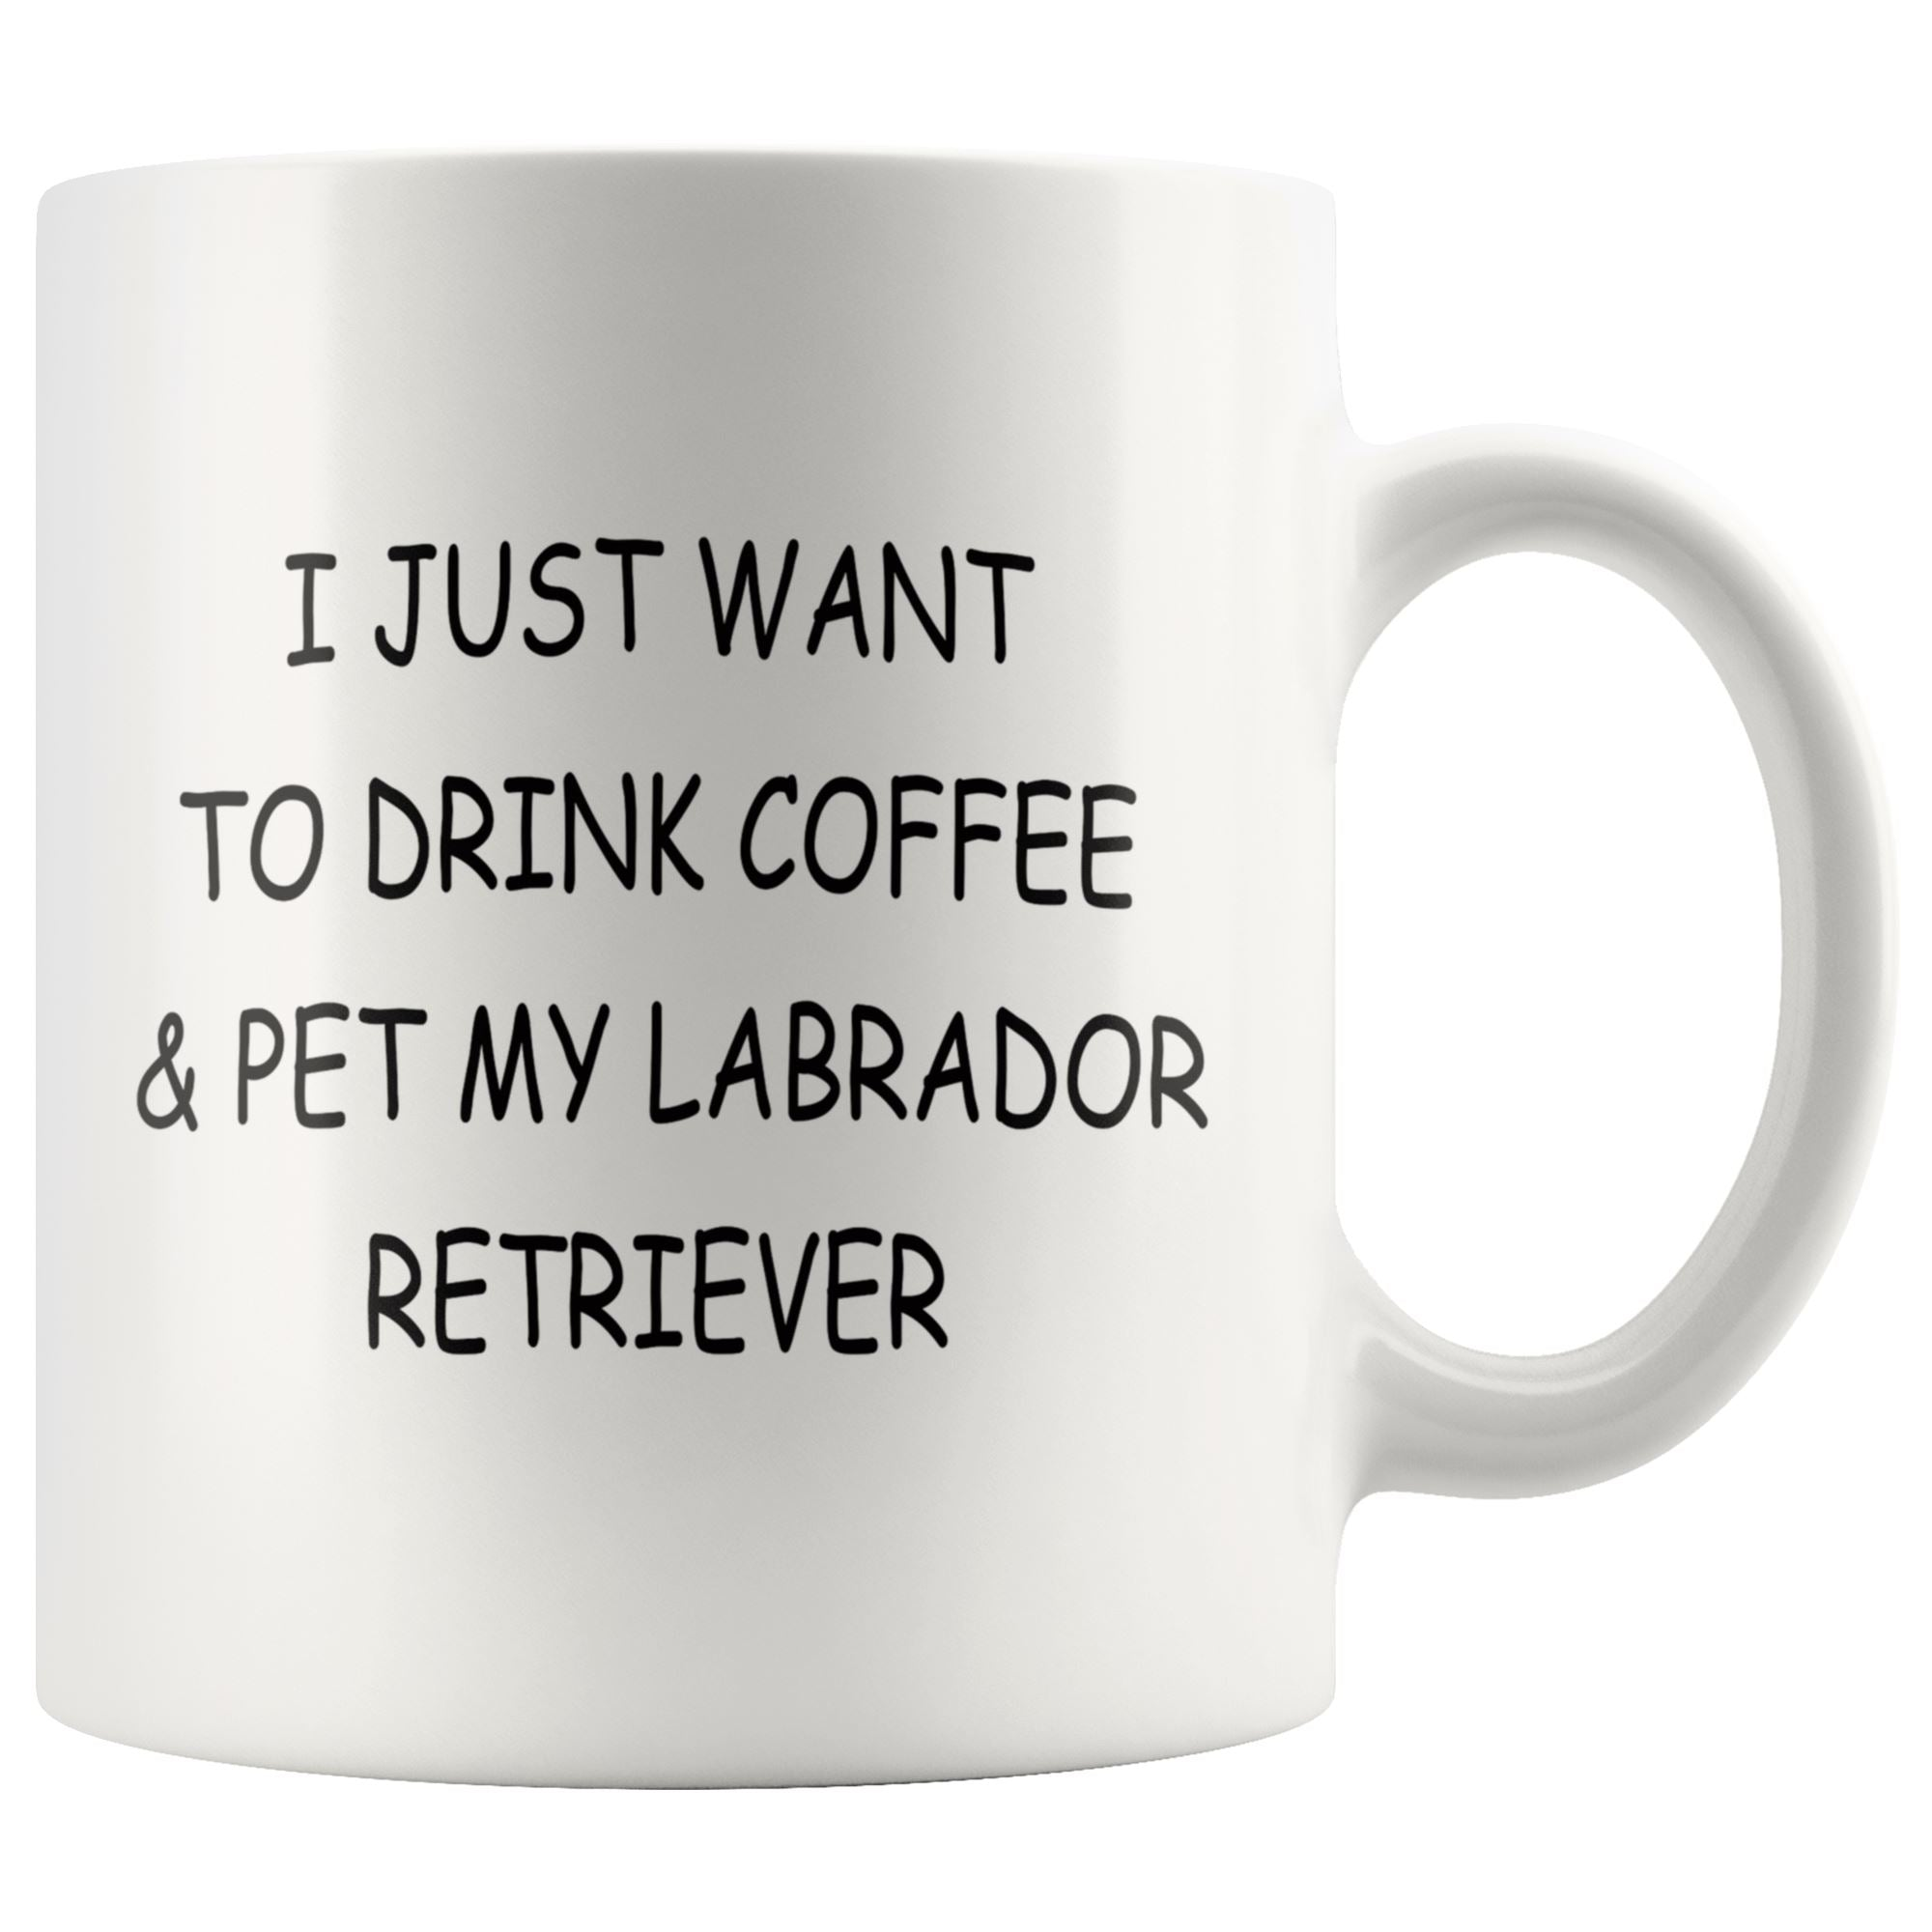 Labrabdor Retriever Mug Drinkware teelaunch 11oz Mug